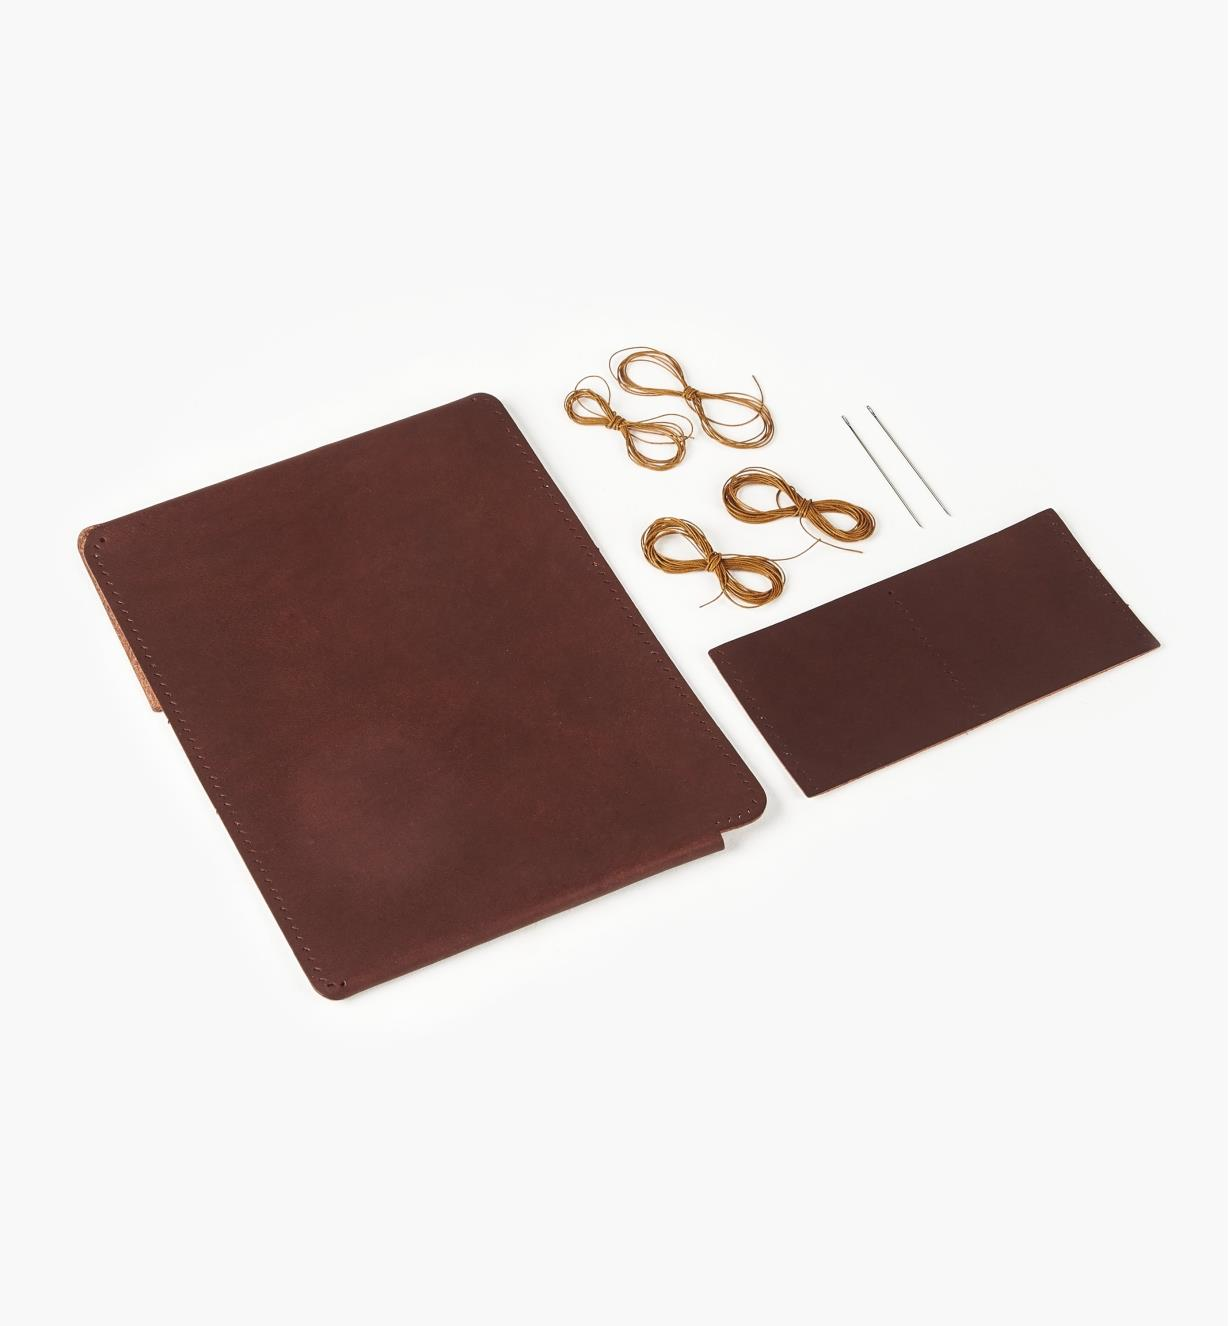 09A1063 - Premium Leathercraft Passport Case Kit